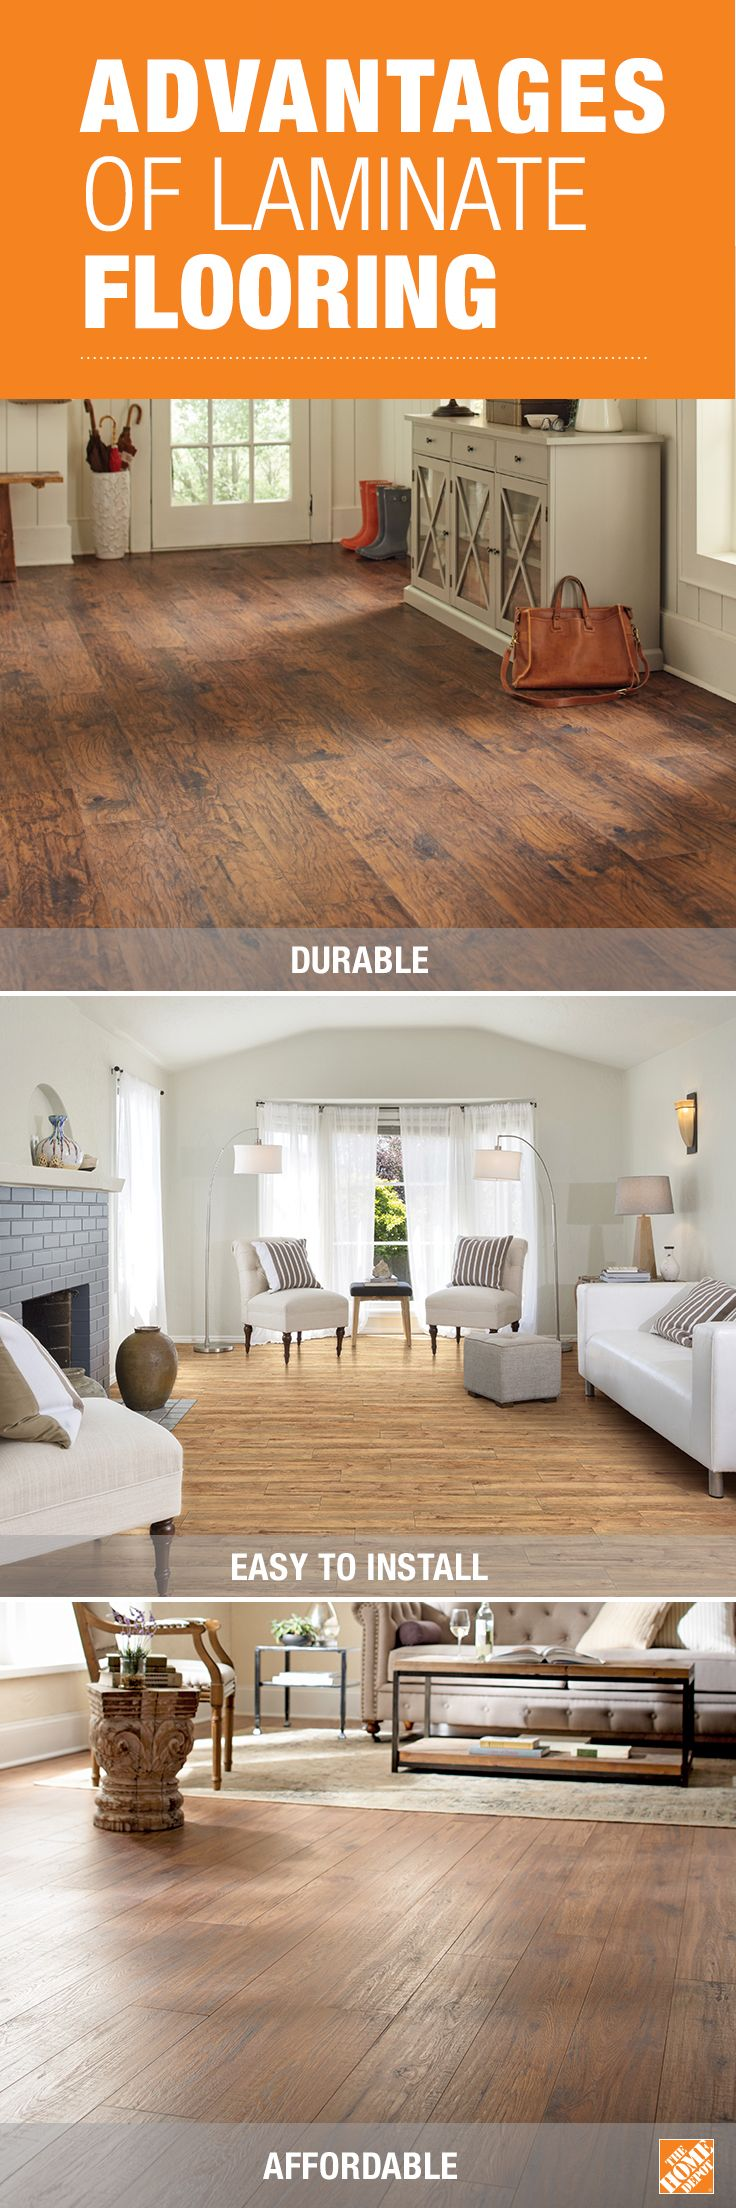 Todays laminate flooring options are impeccably durable easy to install and affordable you can